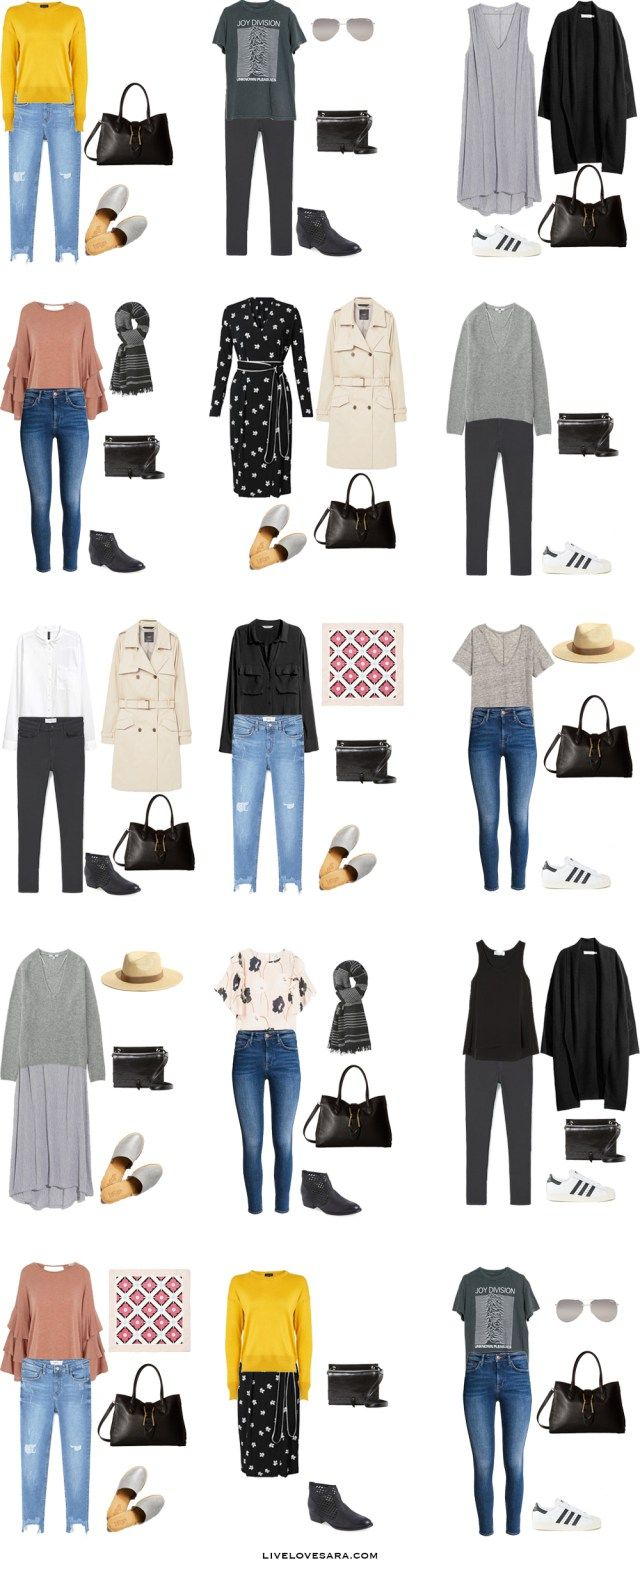 Packing List: One Month in the UK and France in Spring 2017 - What to Wear: Outfit Options 2. livelovesara